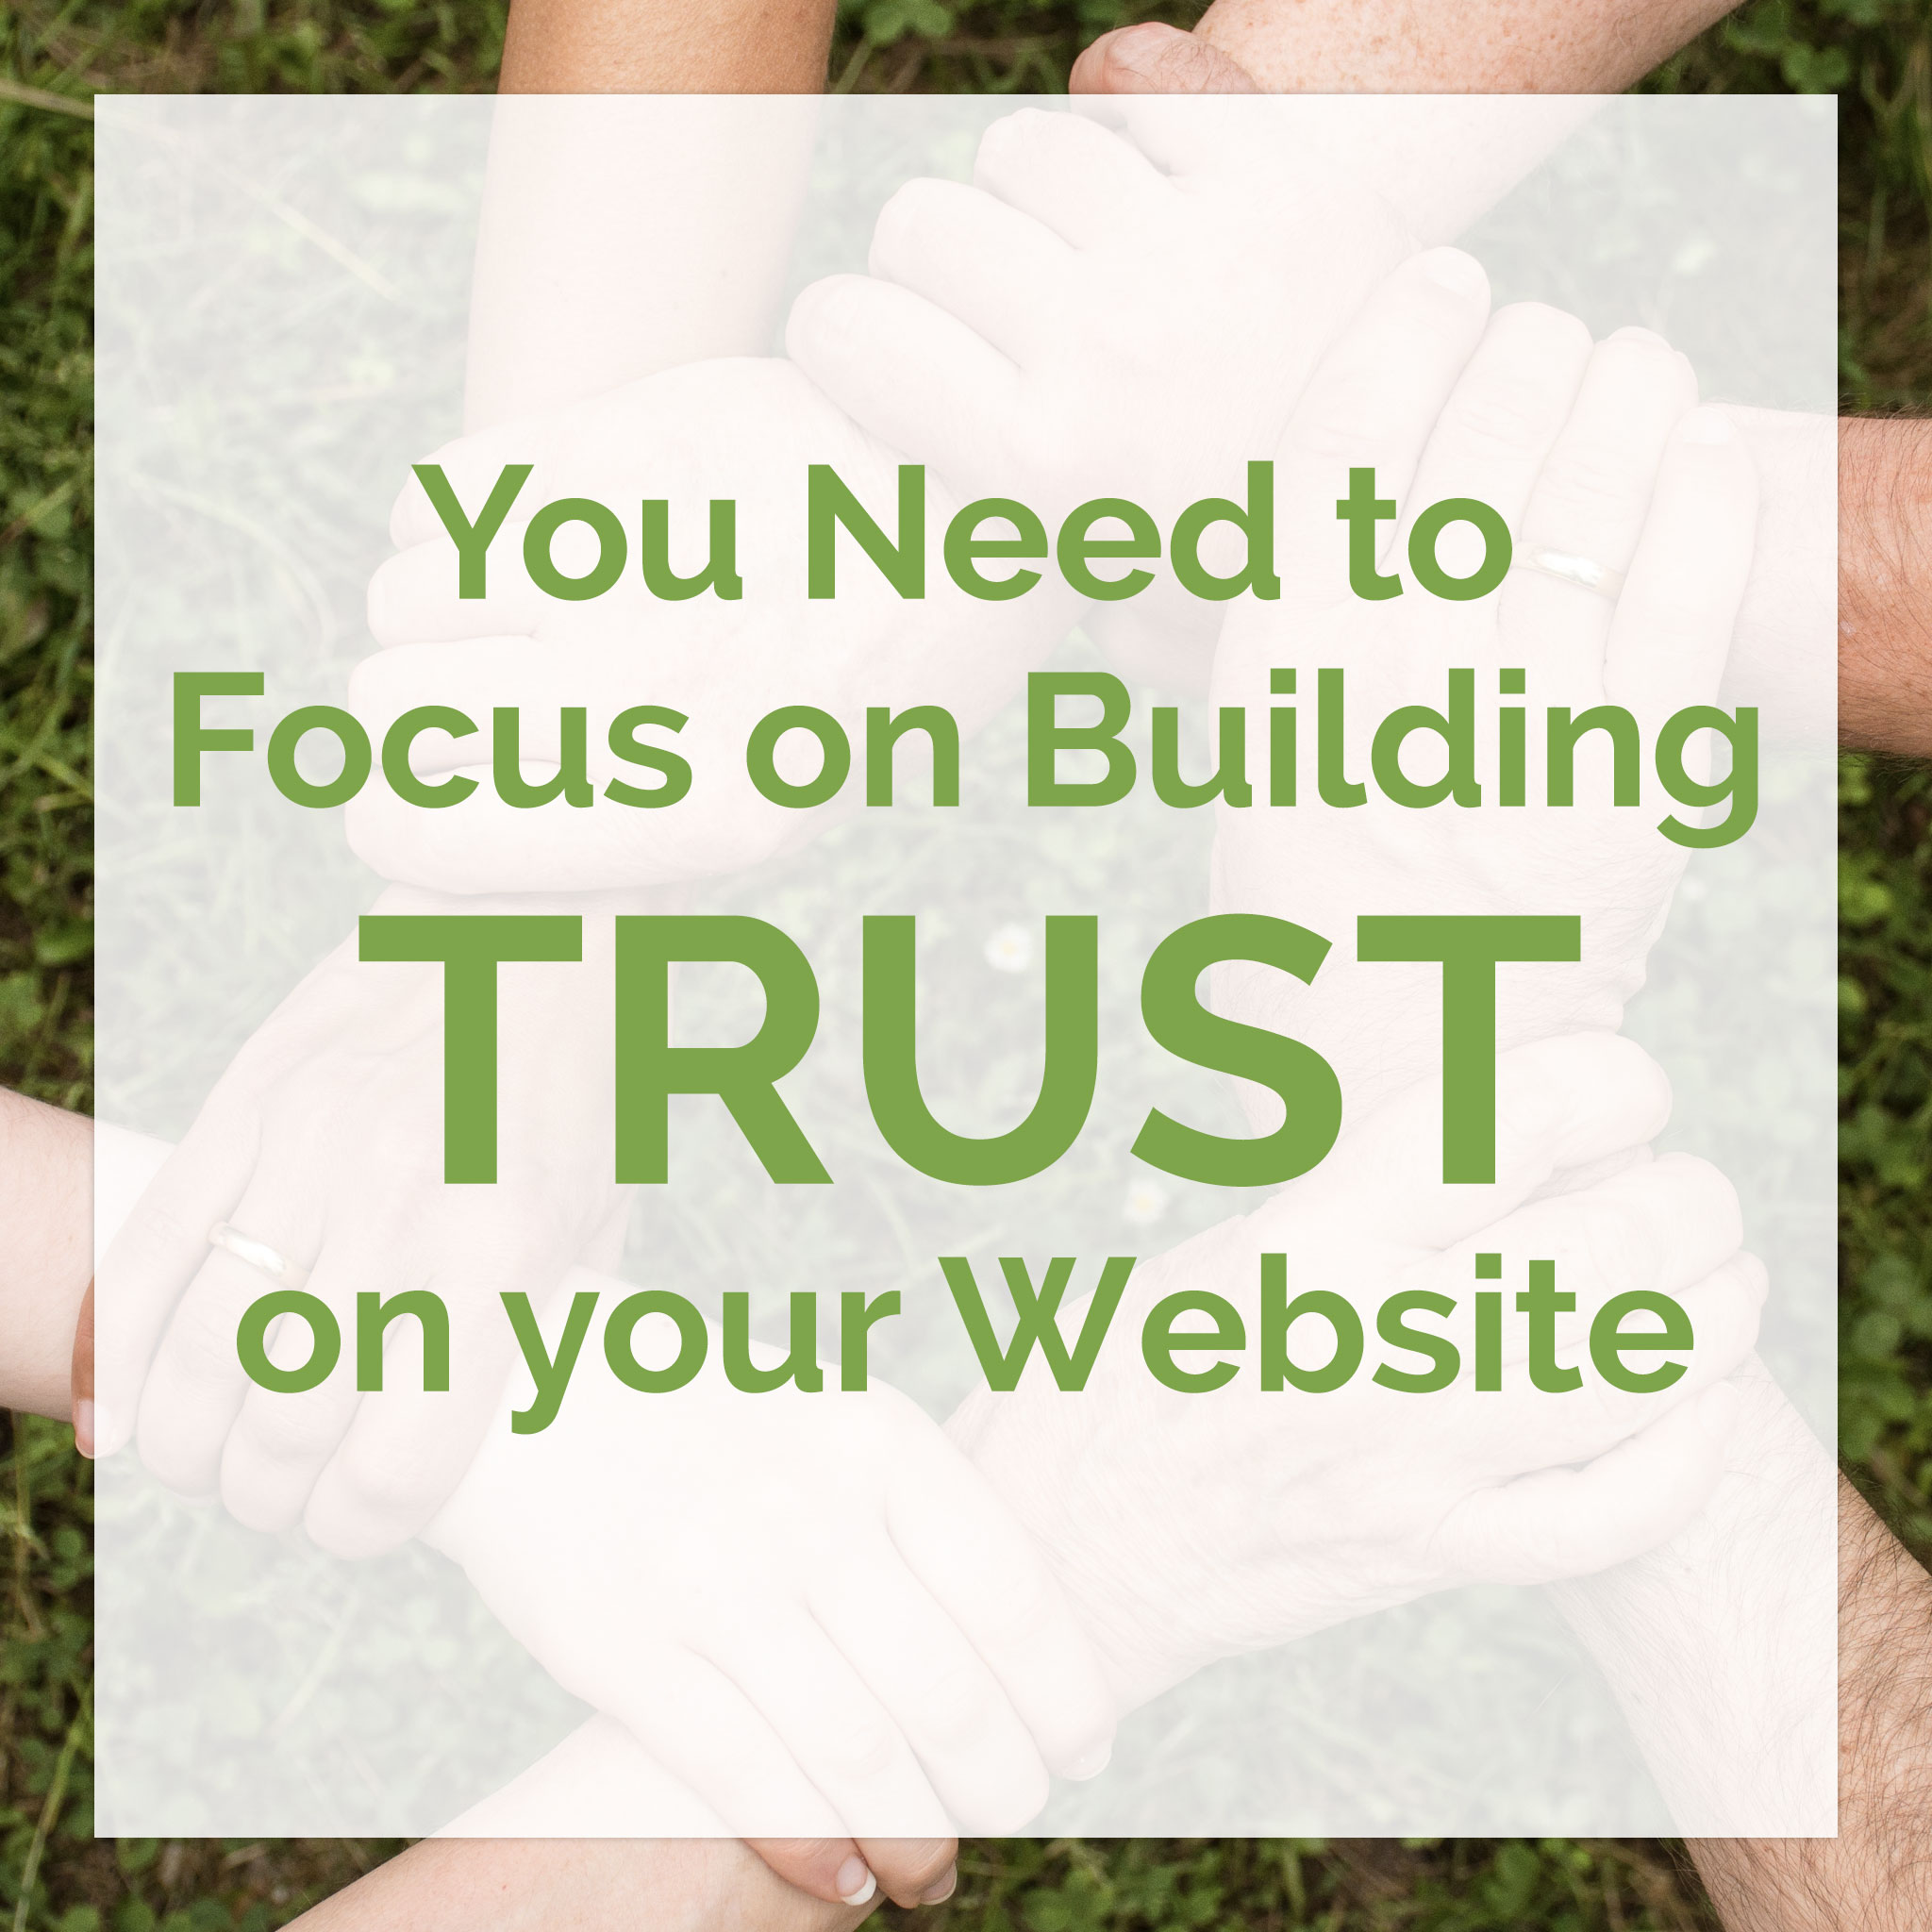 You Need to Focus on Building Trust On Your Website